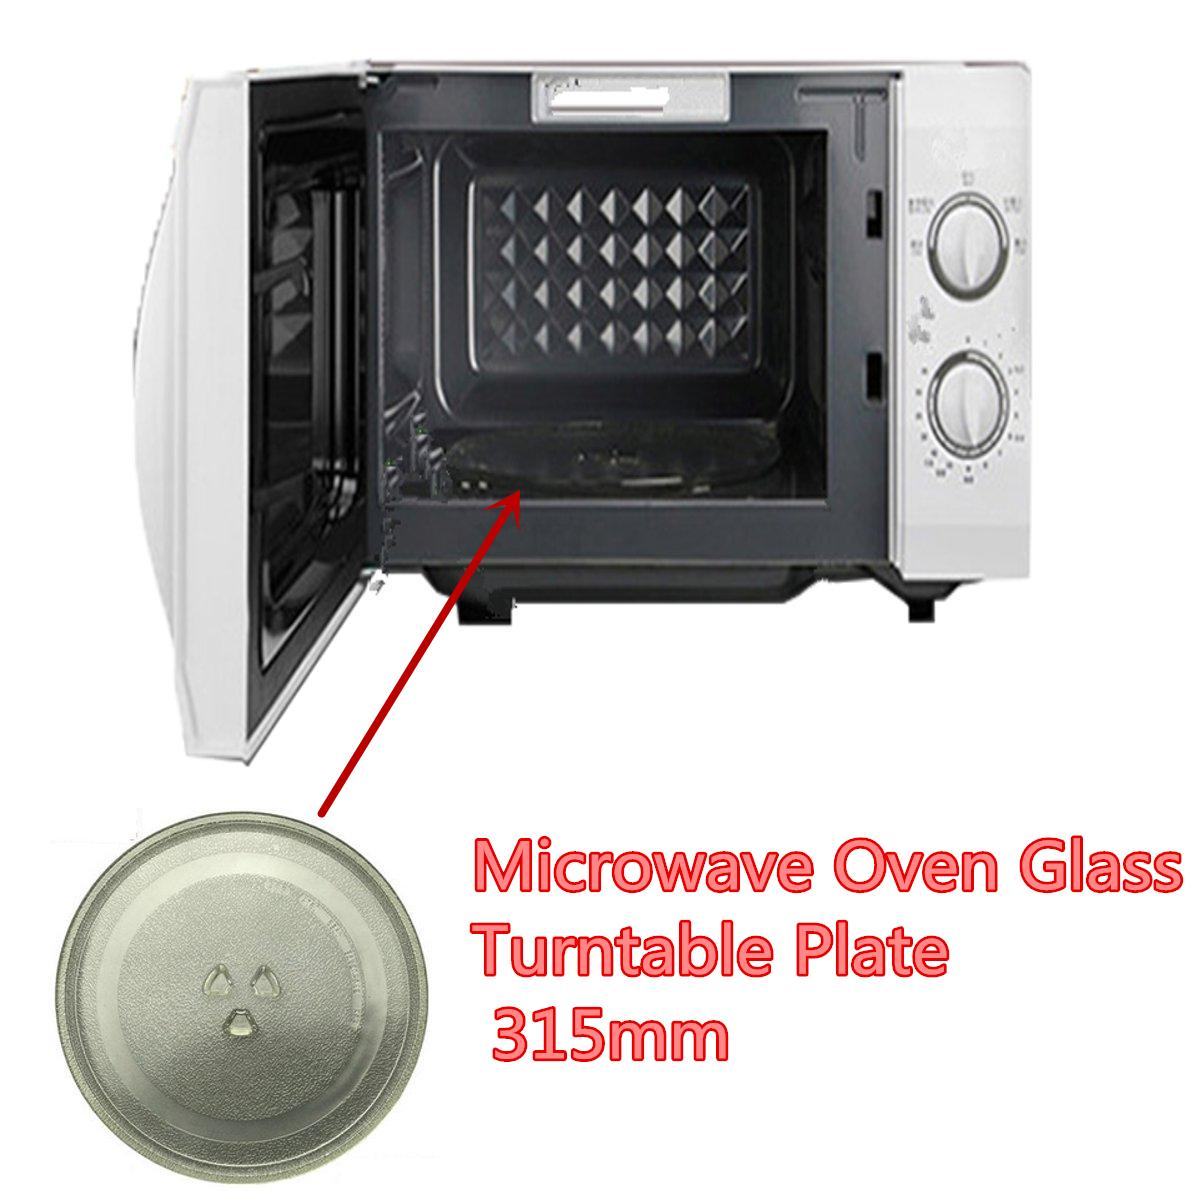 1pc microwave oven turntable glass tray glass plate accessories diameter